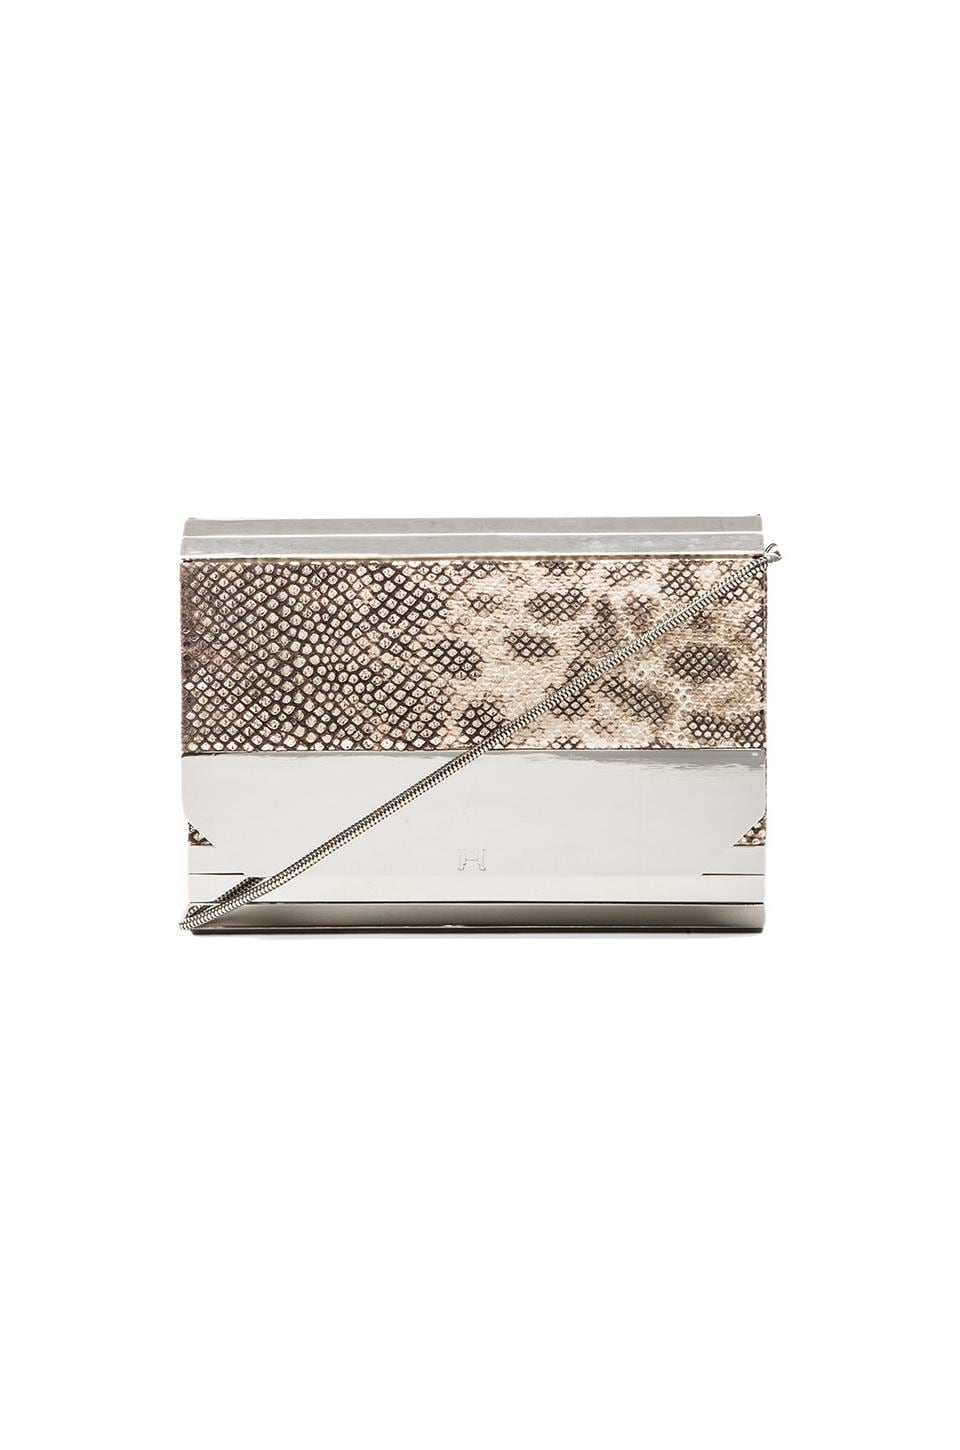 Halston Heritage Halston Metal Tab Clutch in Silver Multi